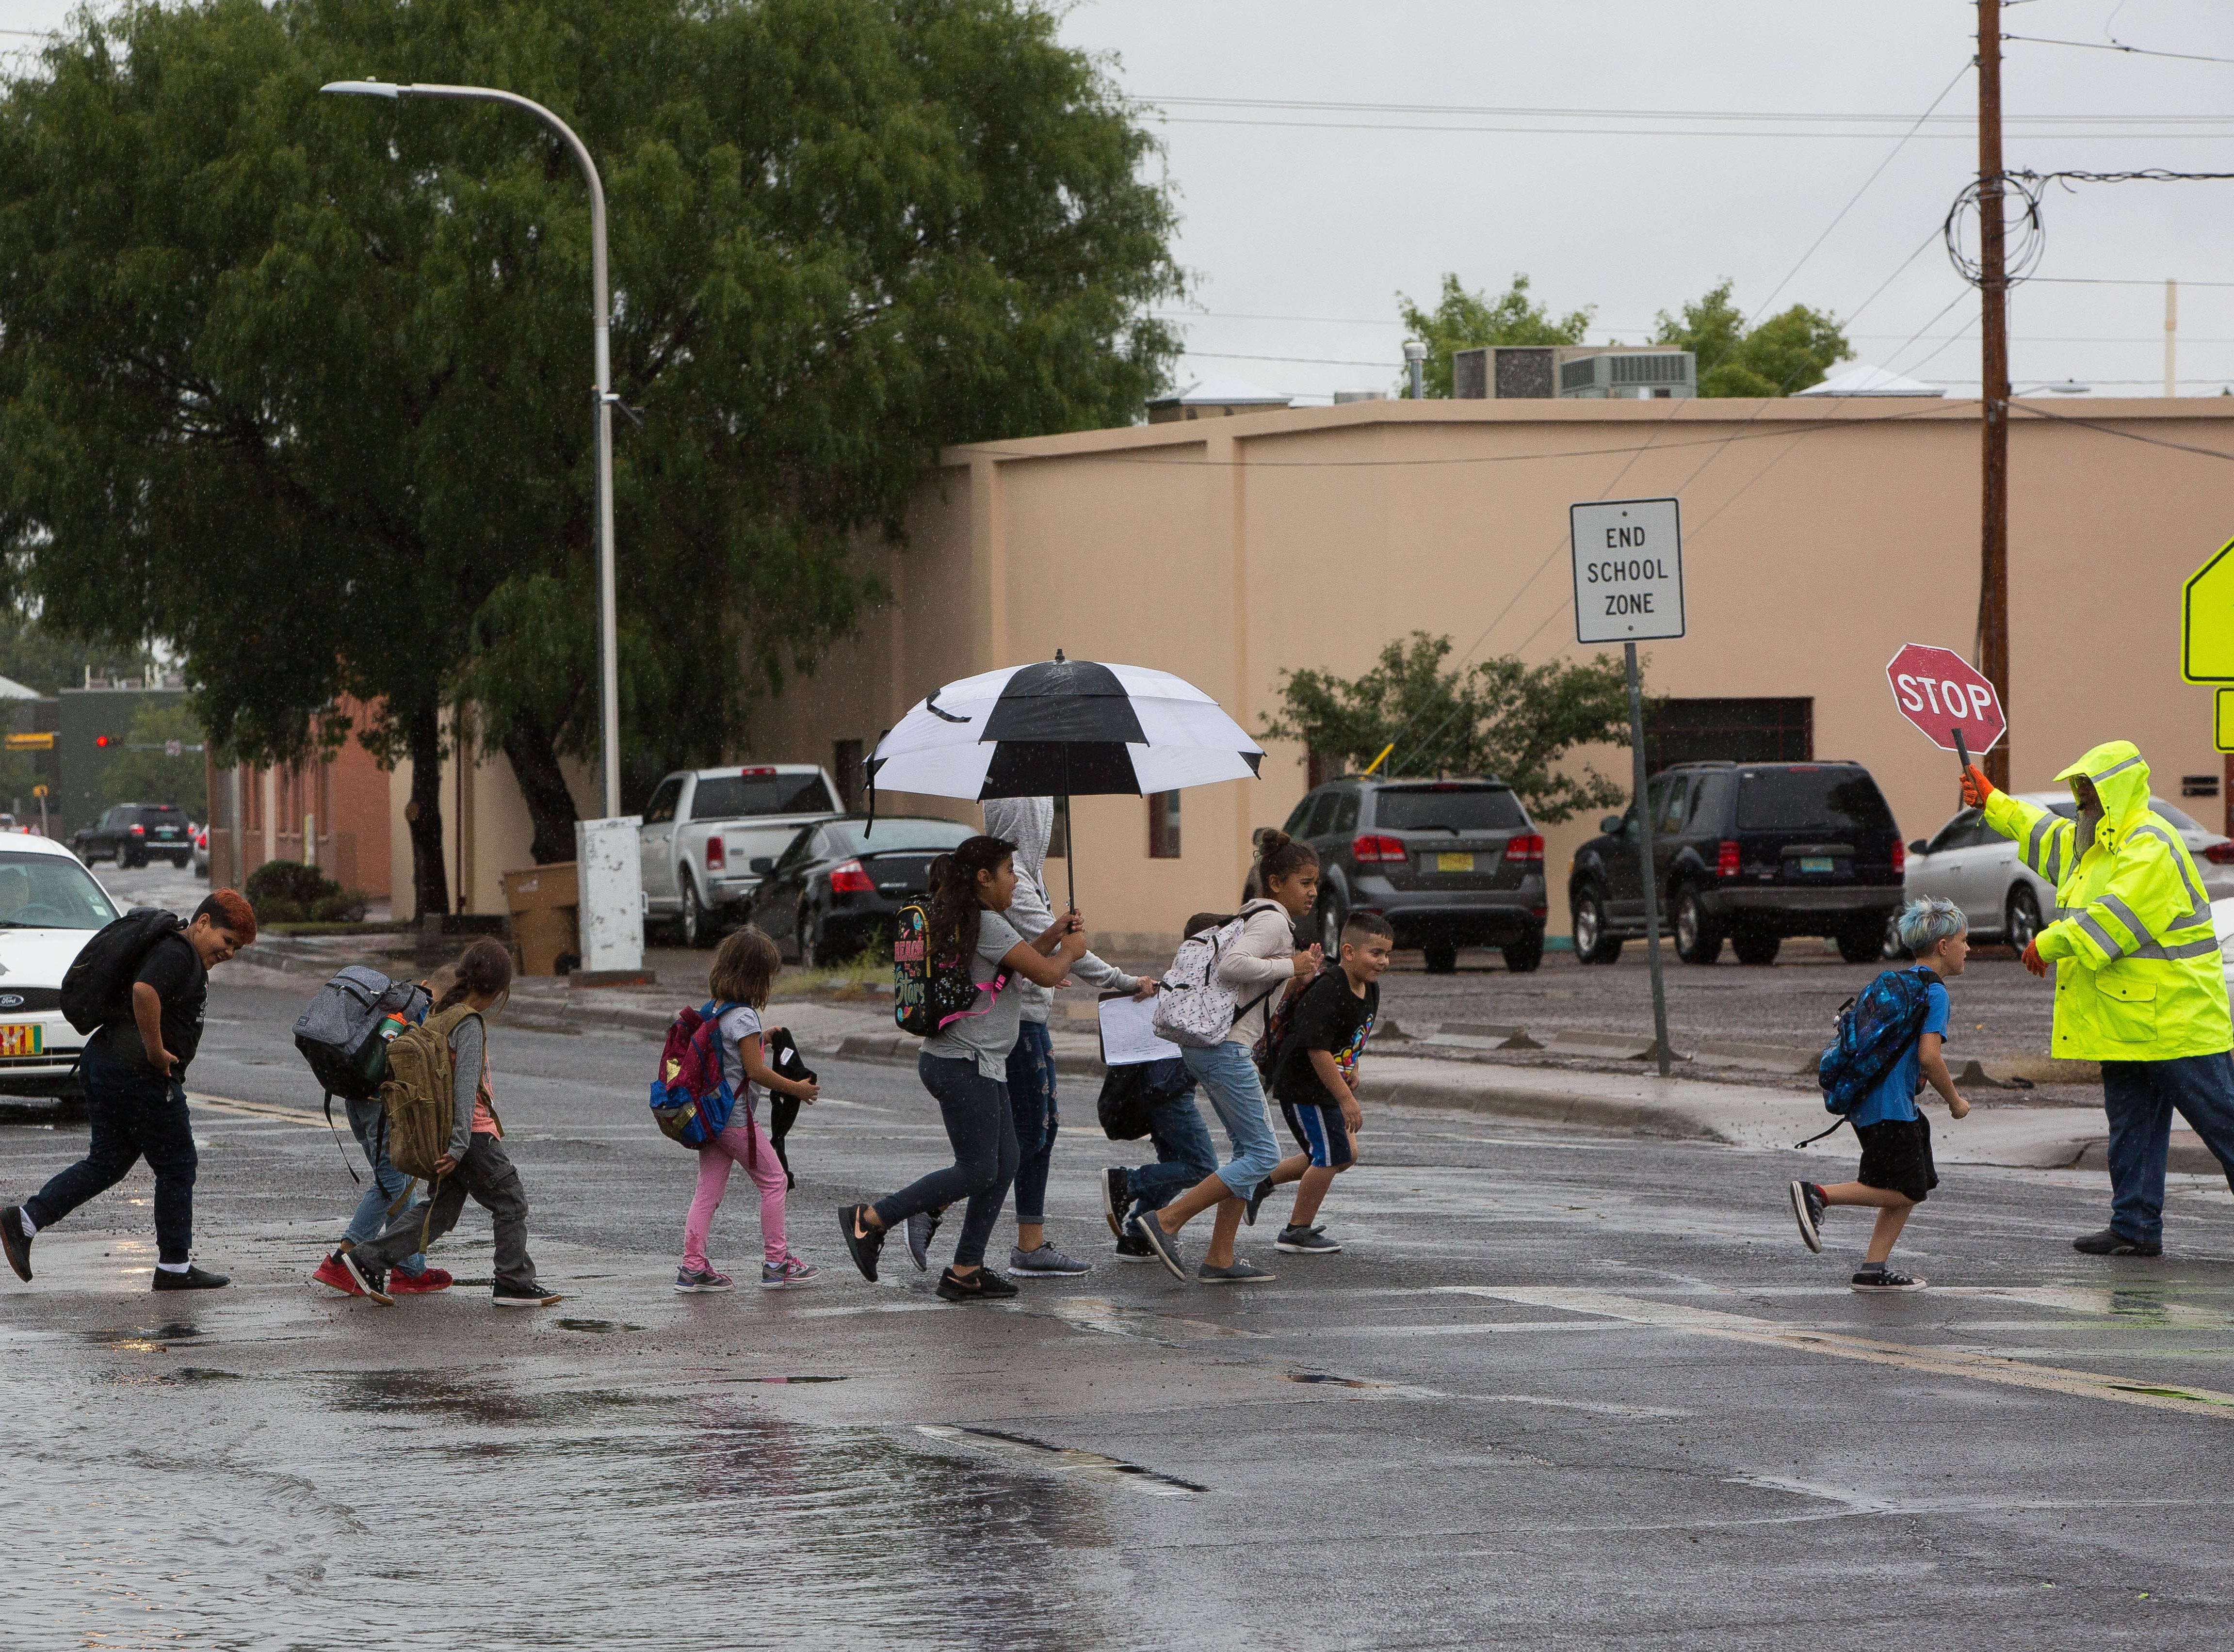 A group of kids run across the cross walk on Alameda and Las Cruces Ave. Thursday September 20, 2018, as storms passed through the area all day.